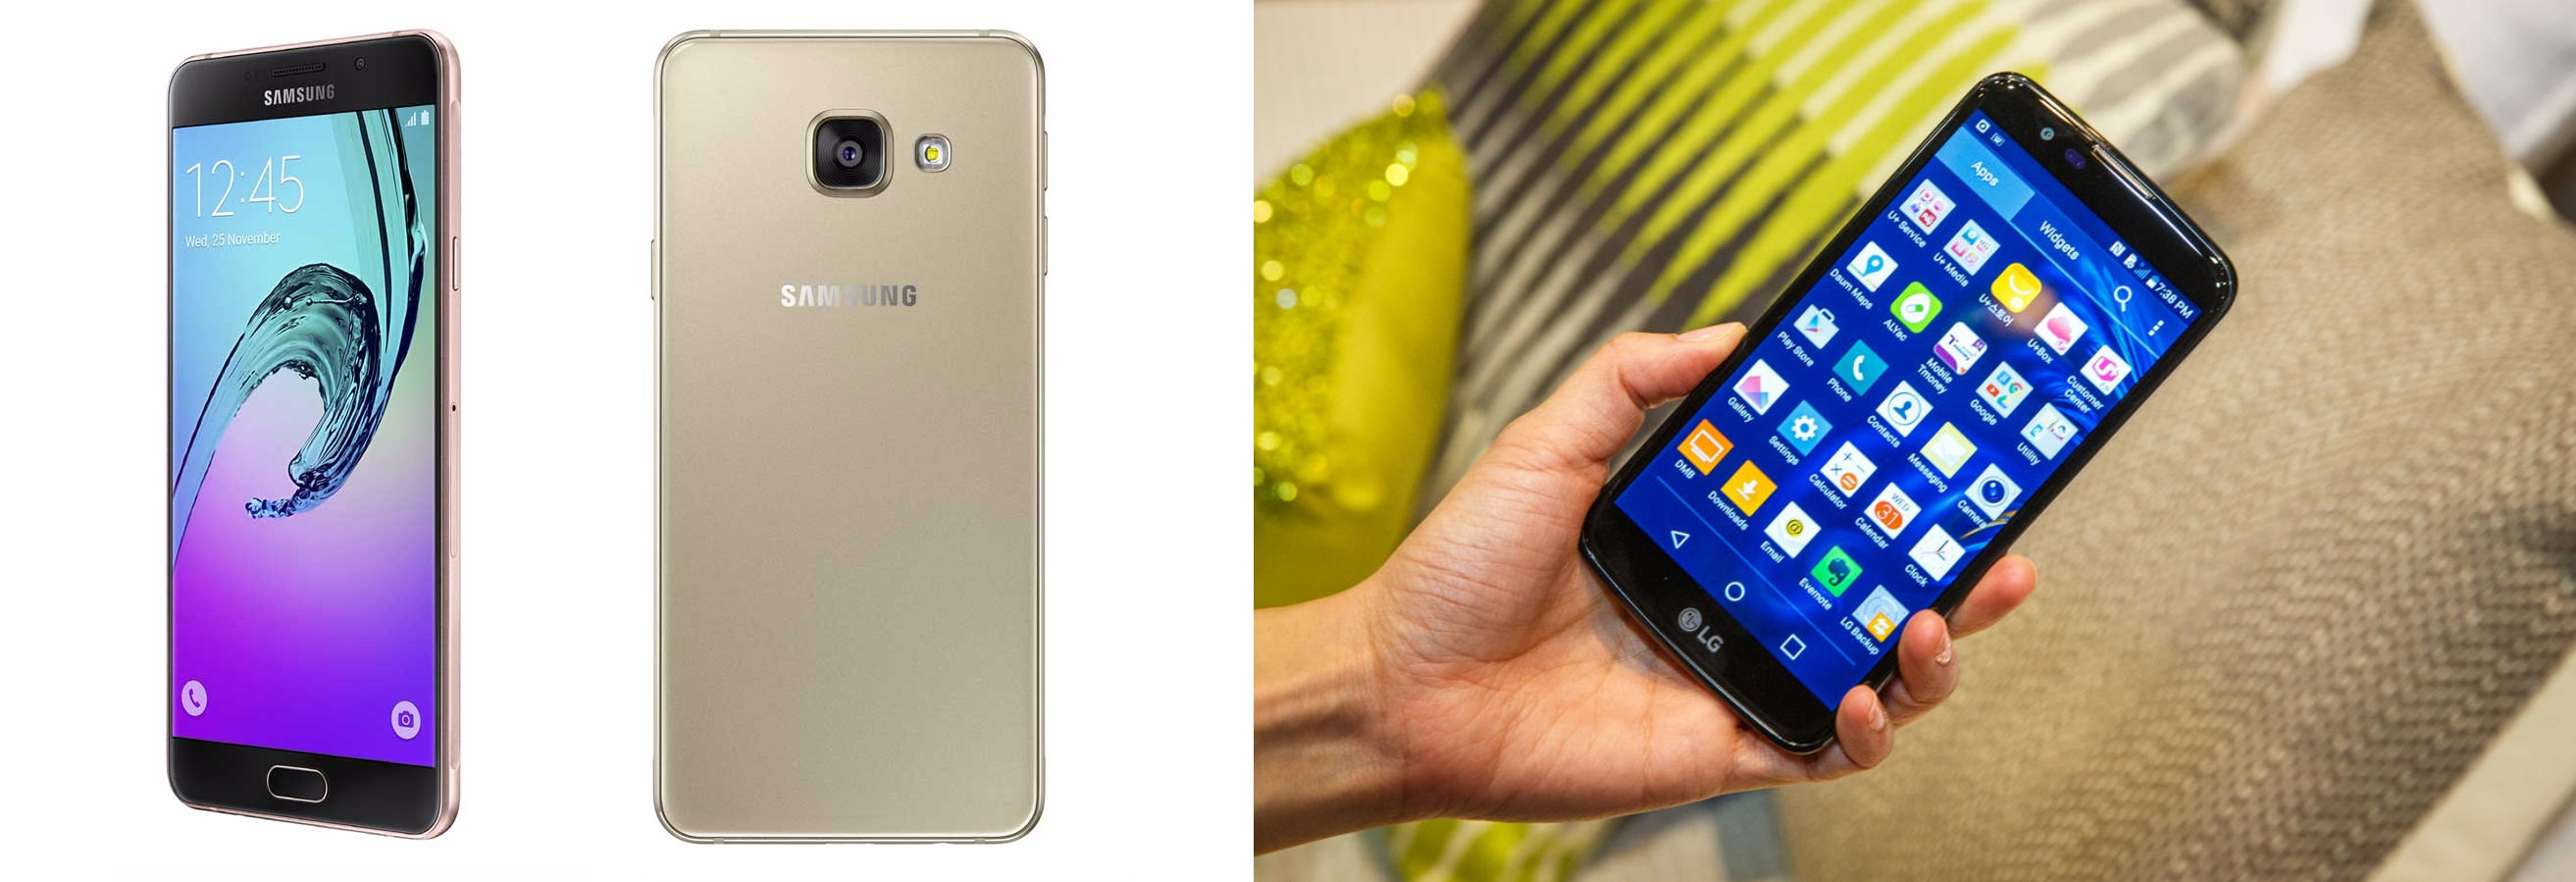 Smartphone Comparison: Samsung's New Mid-Range Galaxy A5 vs LG's New K10 (LTE Variant)